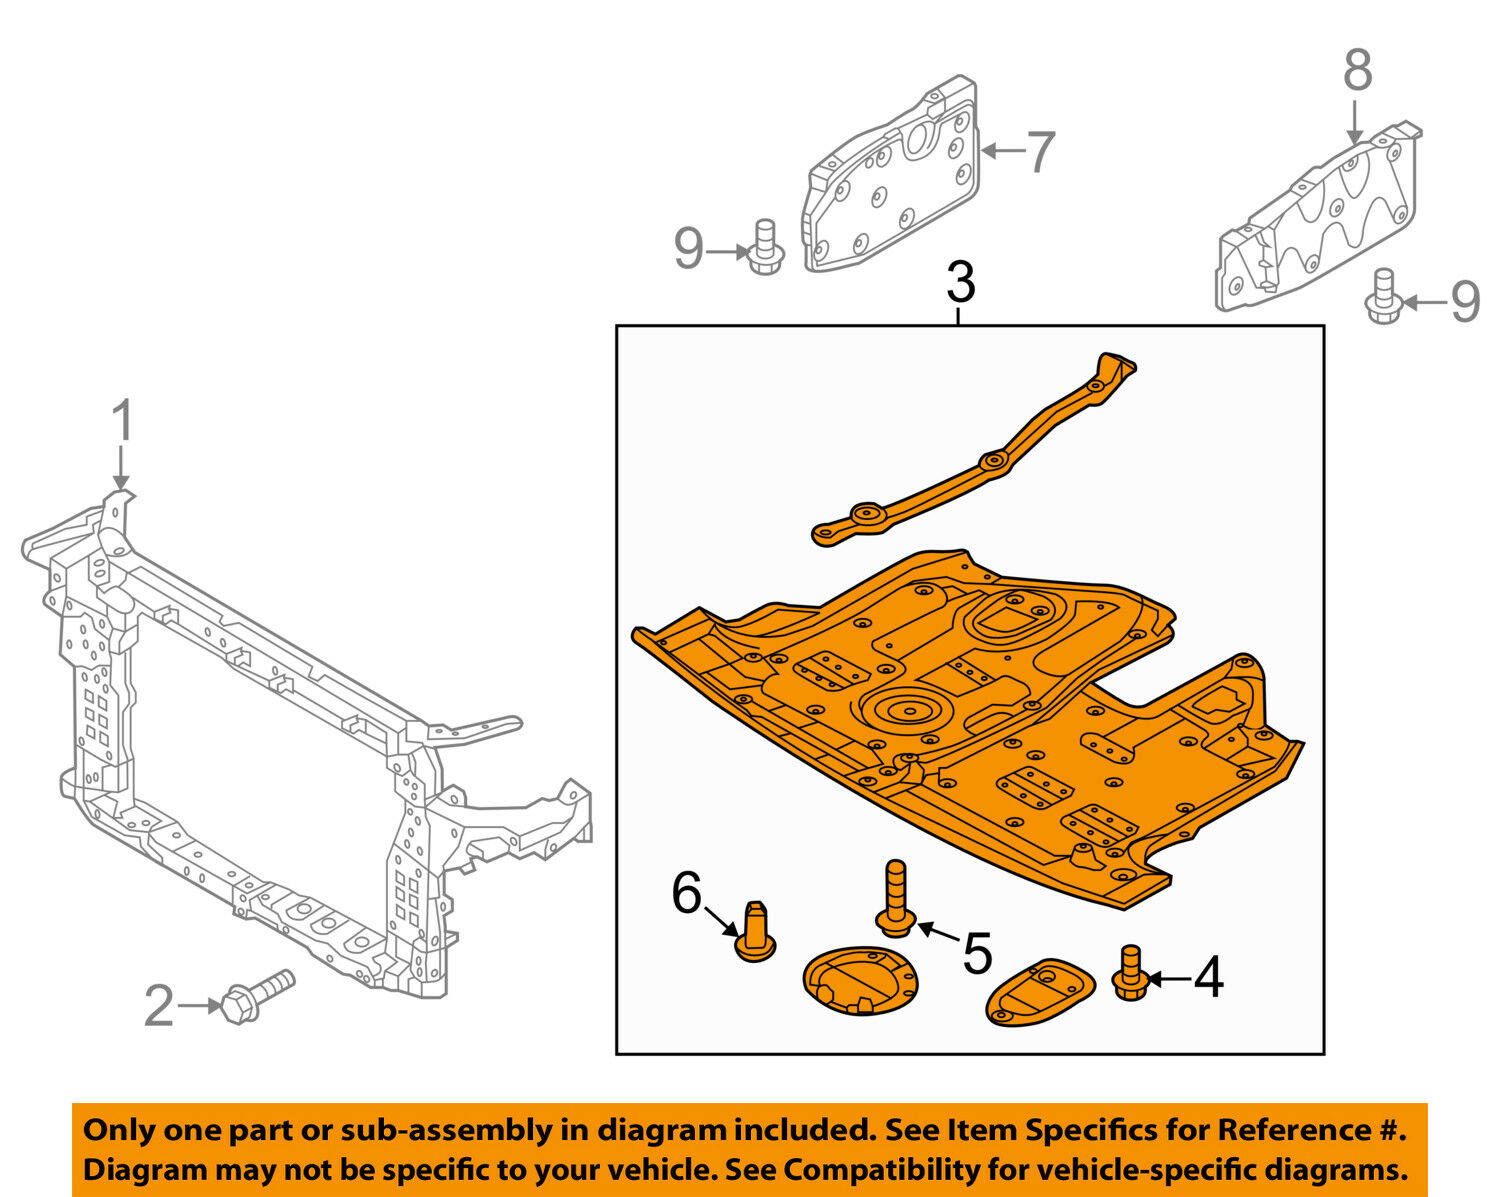 Hyundai Oem Santa Fe Splash Shield Under Engine Radiator Cover Diagram 291102w800 1 Of 2free Shipping